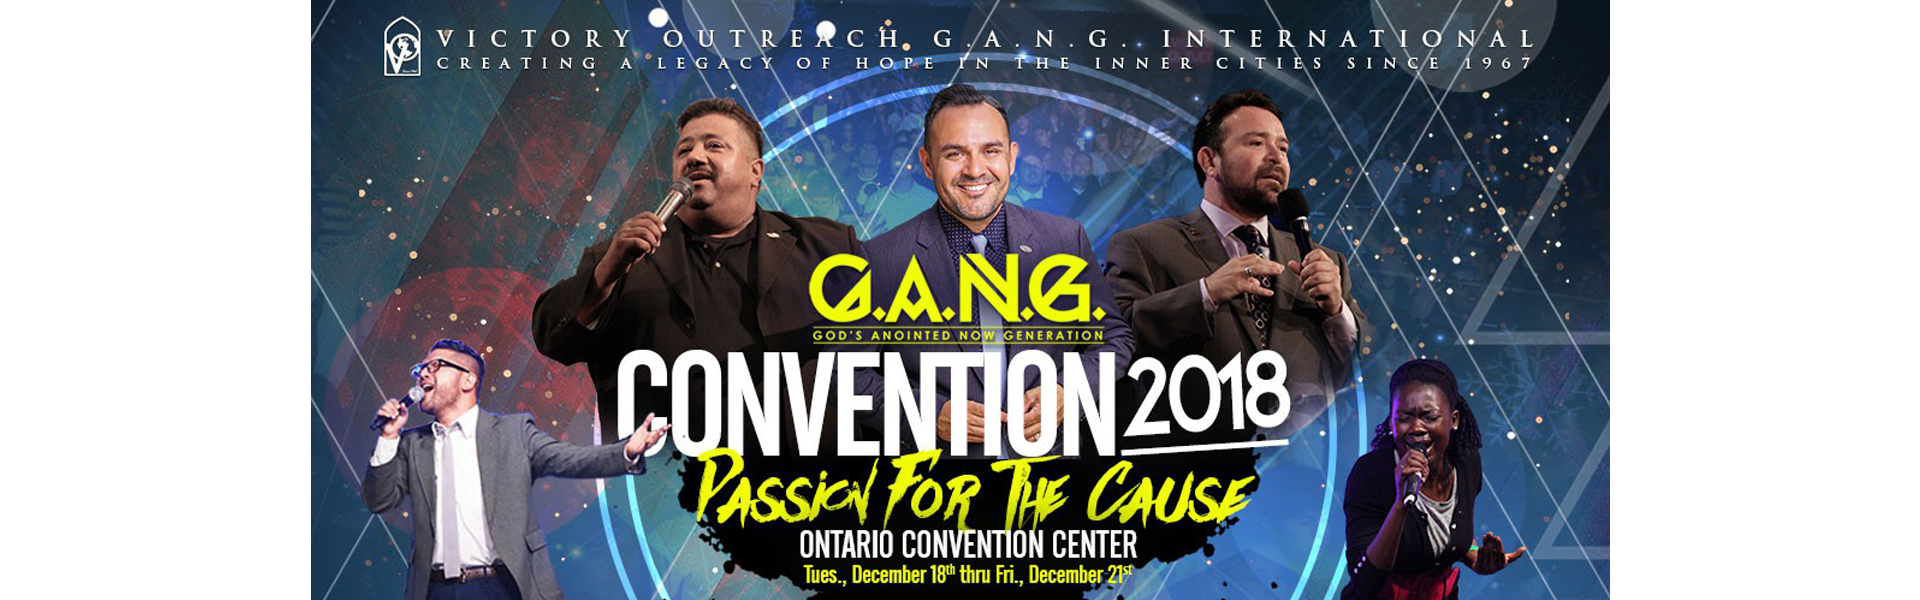 Gang Convention 12/18-21